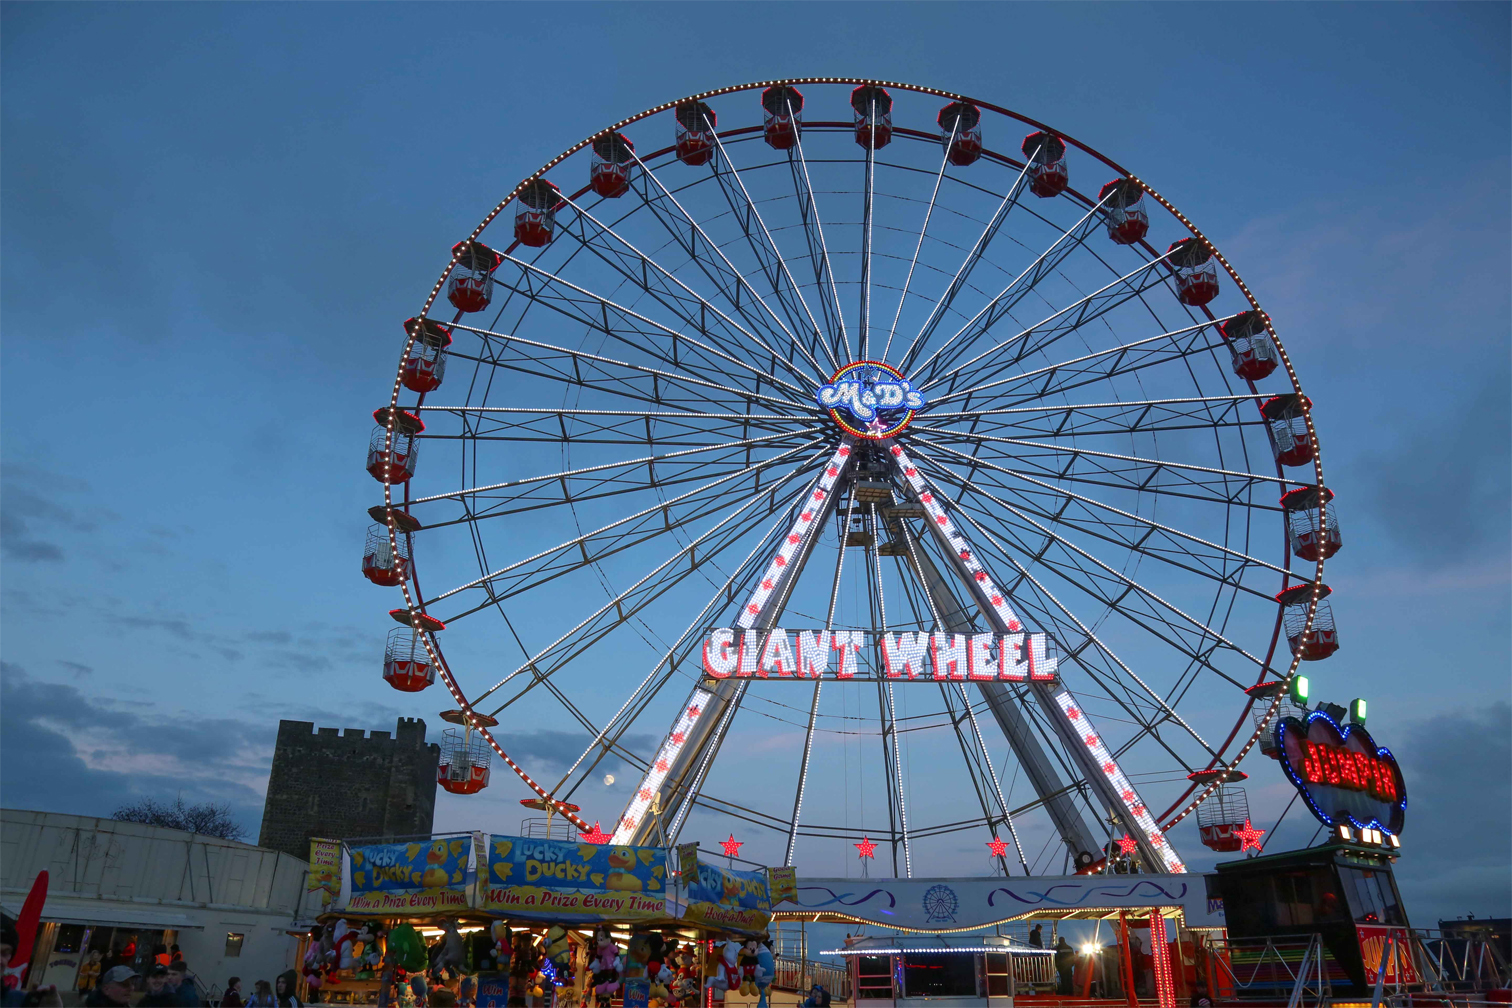 the giant wheel planet